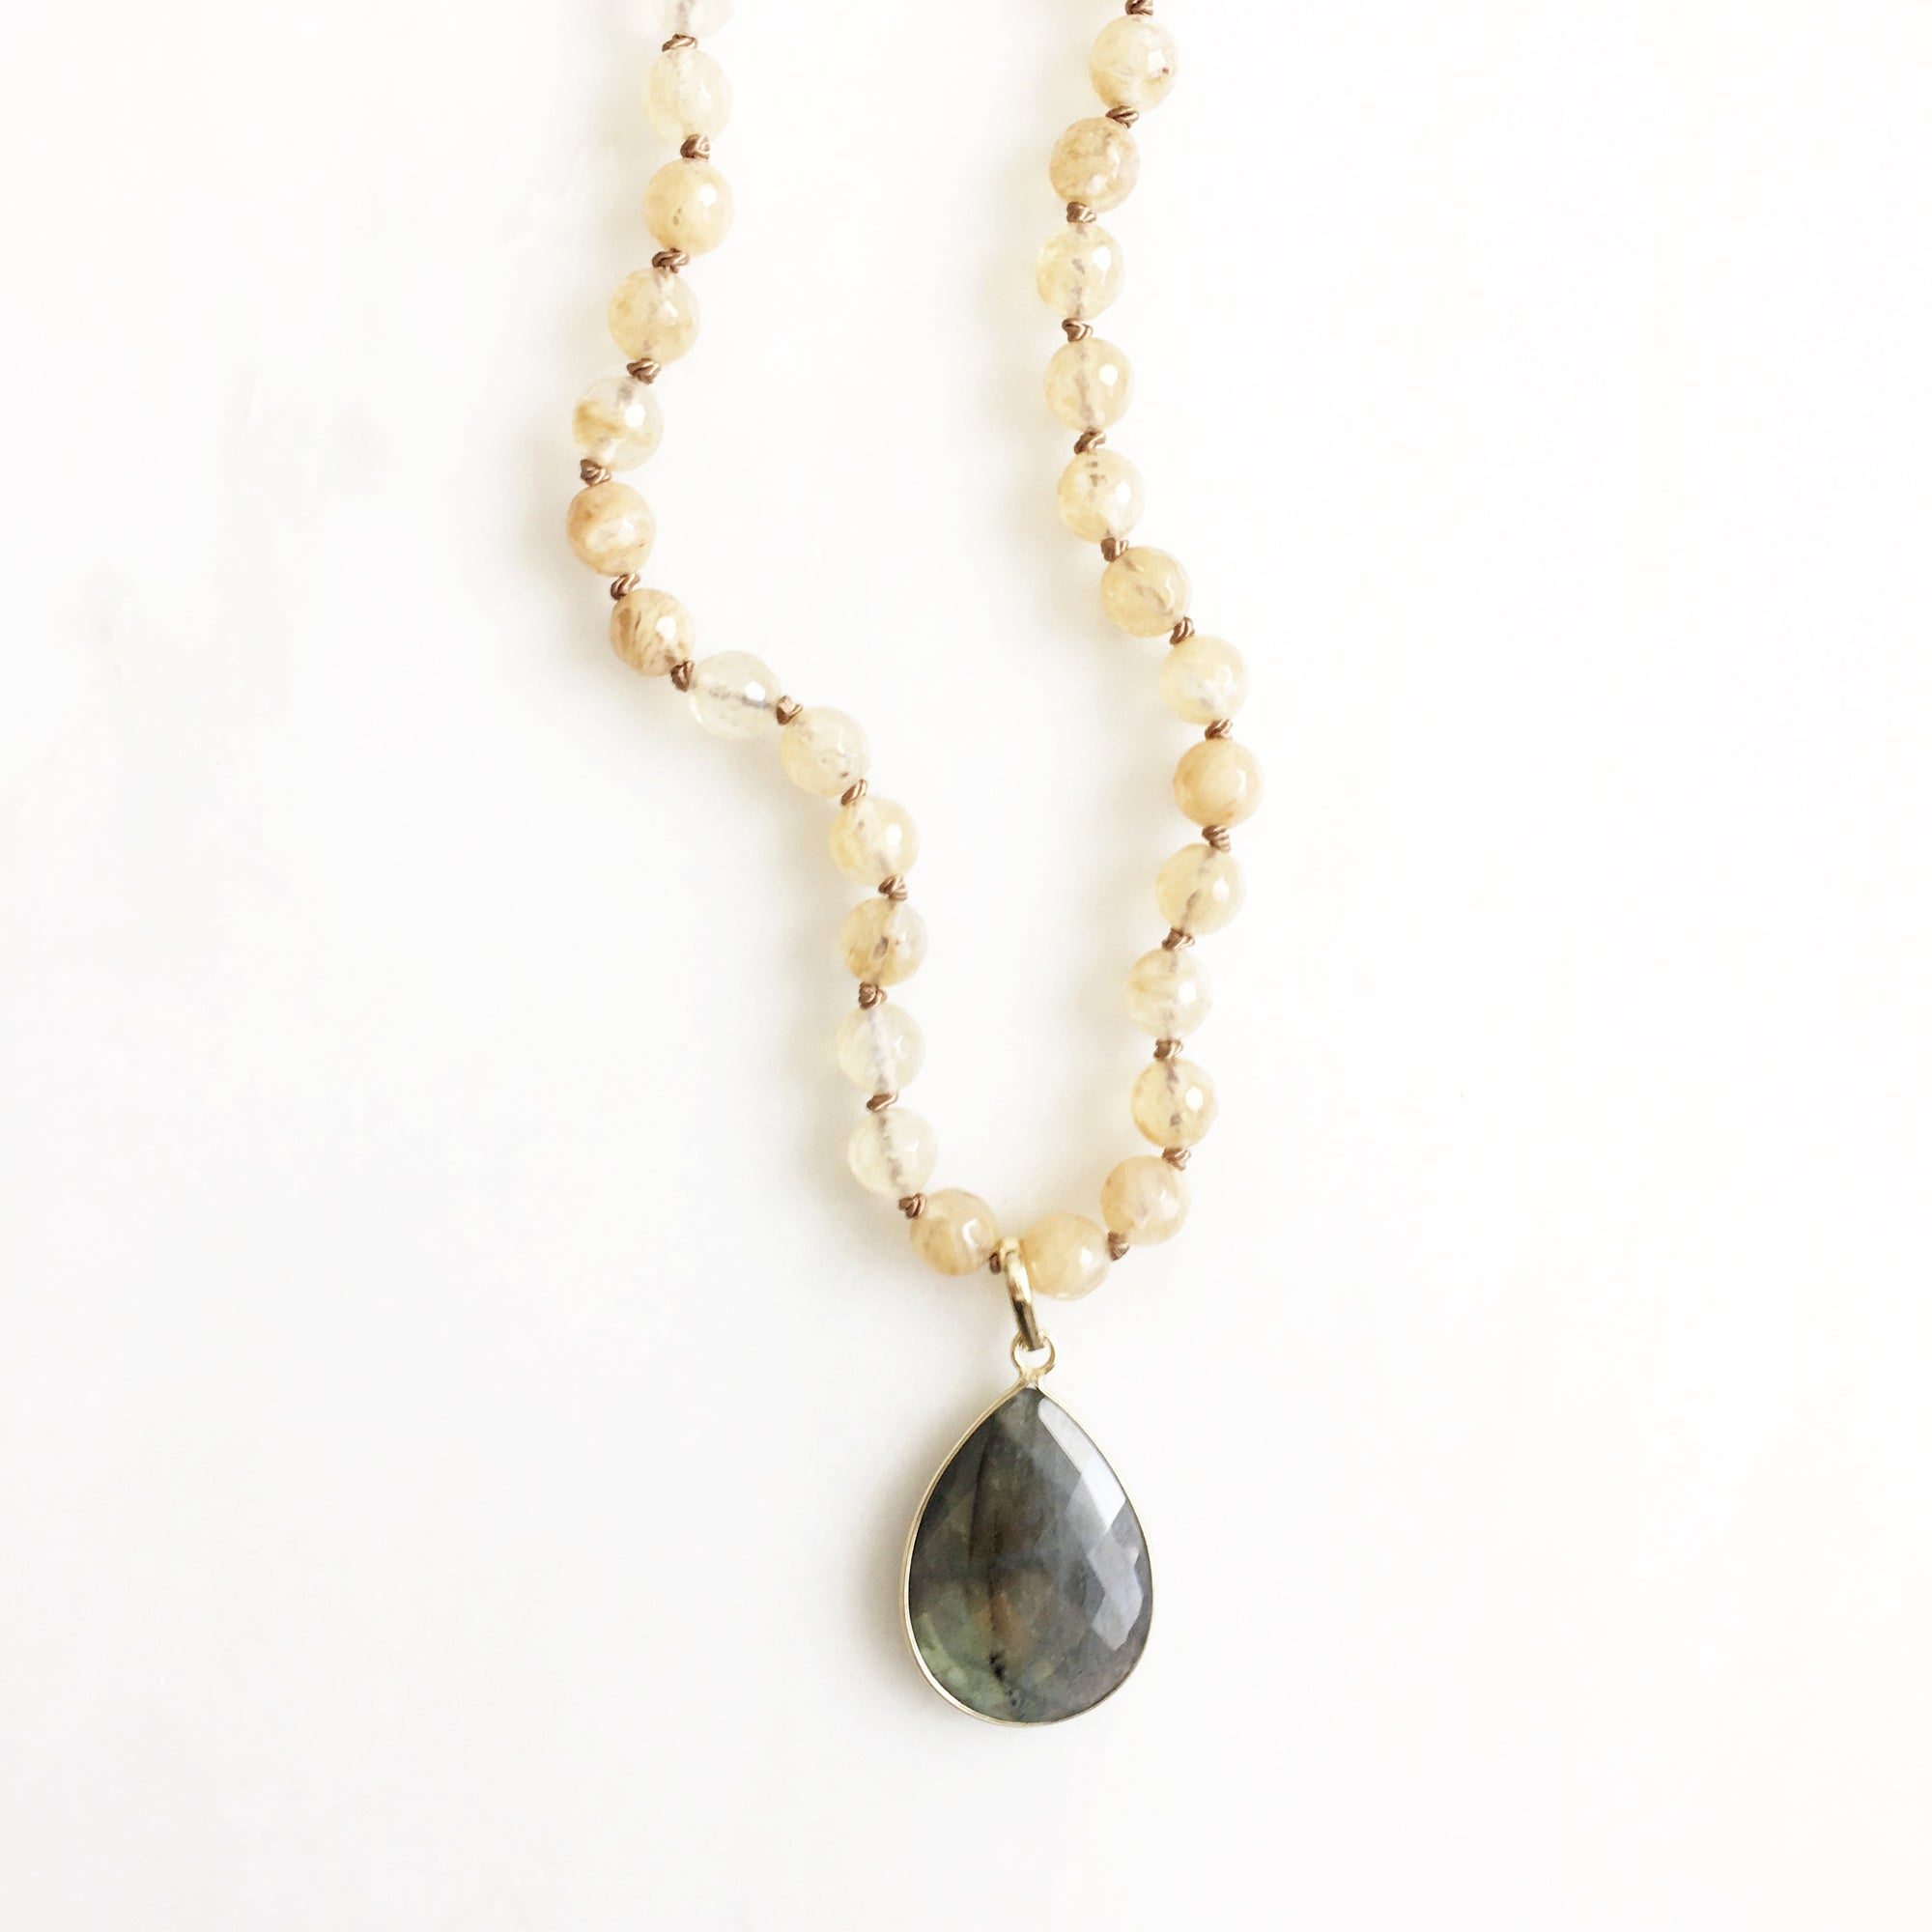 Cove Champagne Quartz Necklace